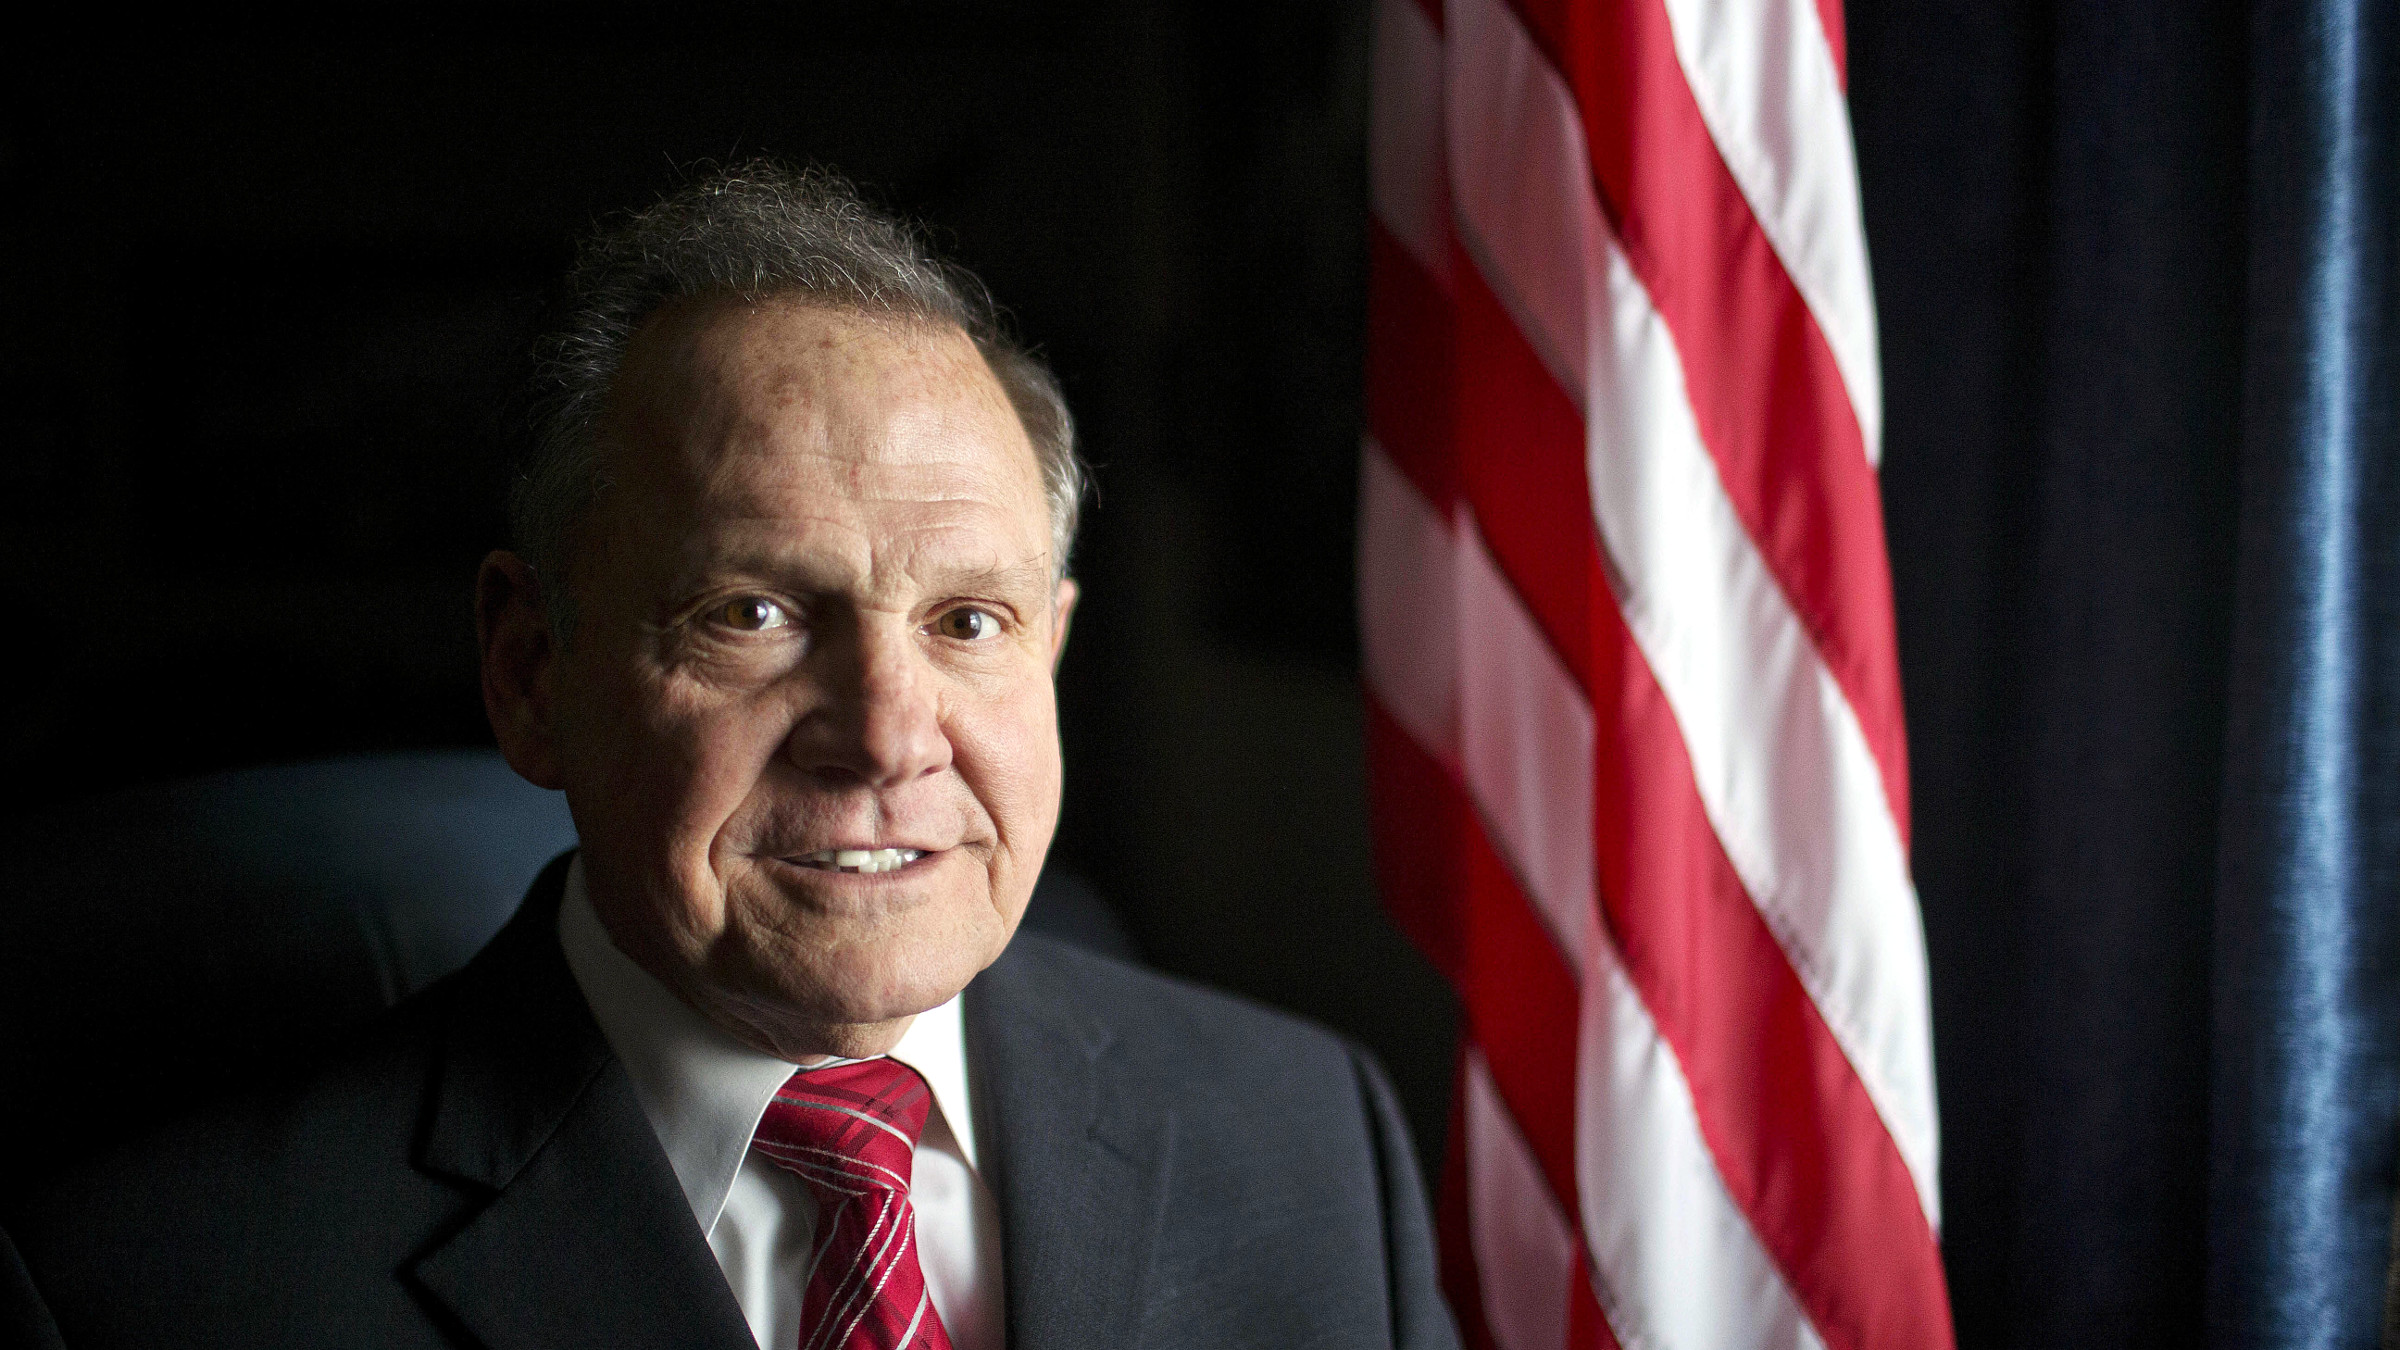 In this Feb. 17, 2015, file photo, Alabama Chief Justice Roy Moore poses in front the the American flag in Montgomery, Ala. The chief justice continues to fight against gay marriage in Alabama. Moore has been suspended from office after the Judicial Inquiry Commission accused him of violating the canons of judicial ethics with his actions during the fight over sane-sex marriage